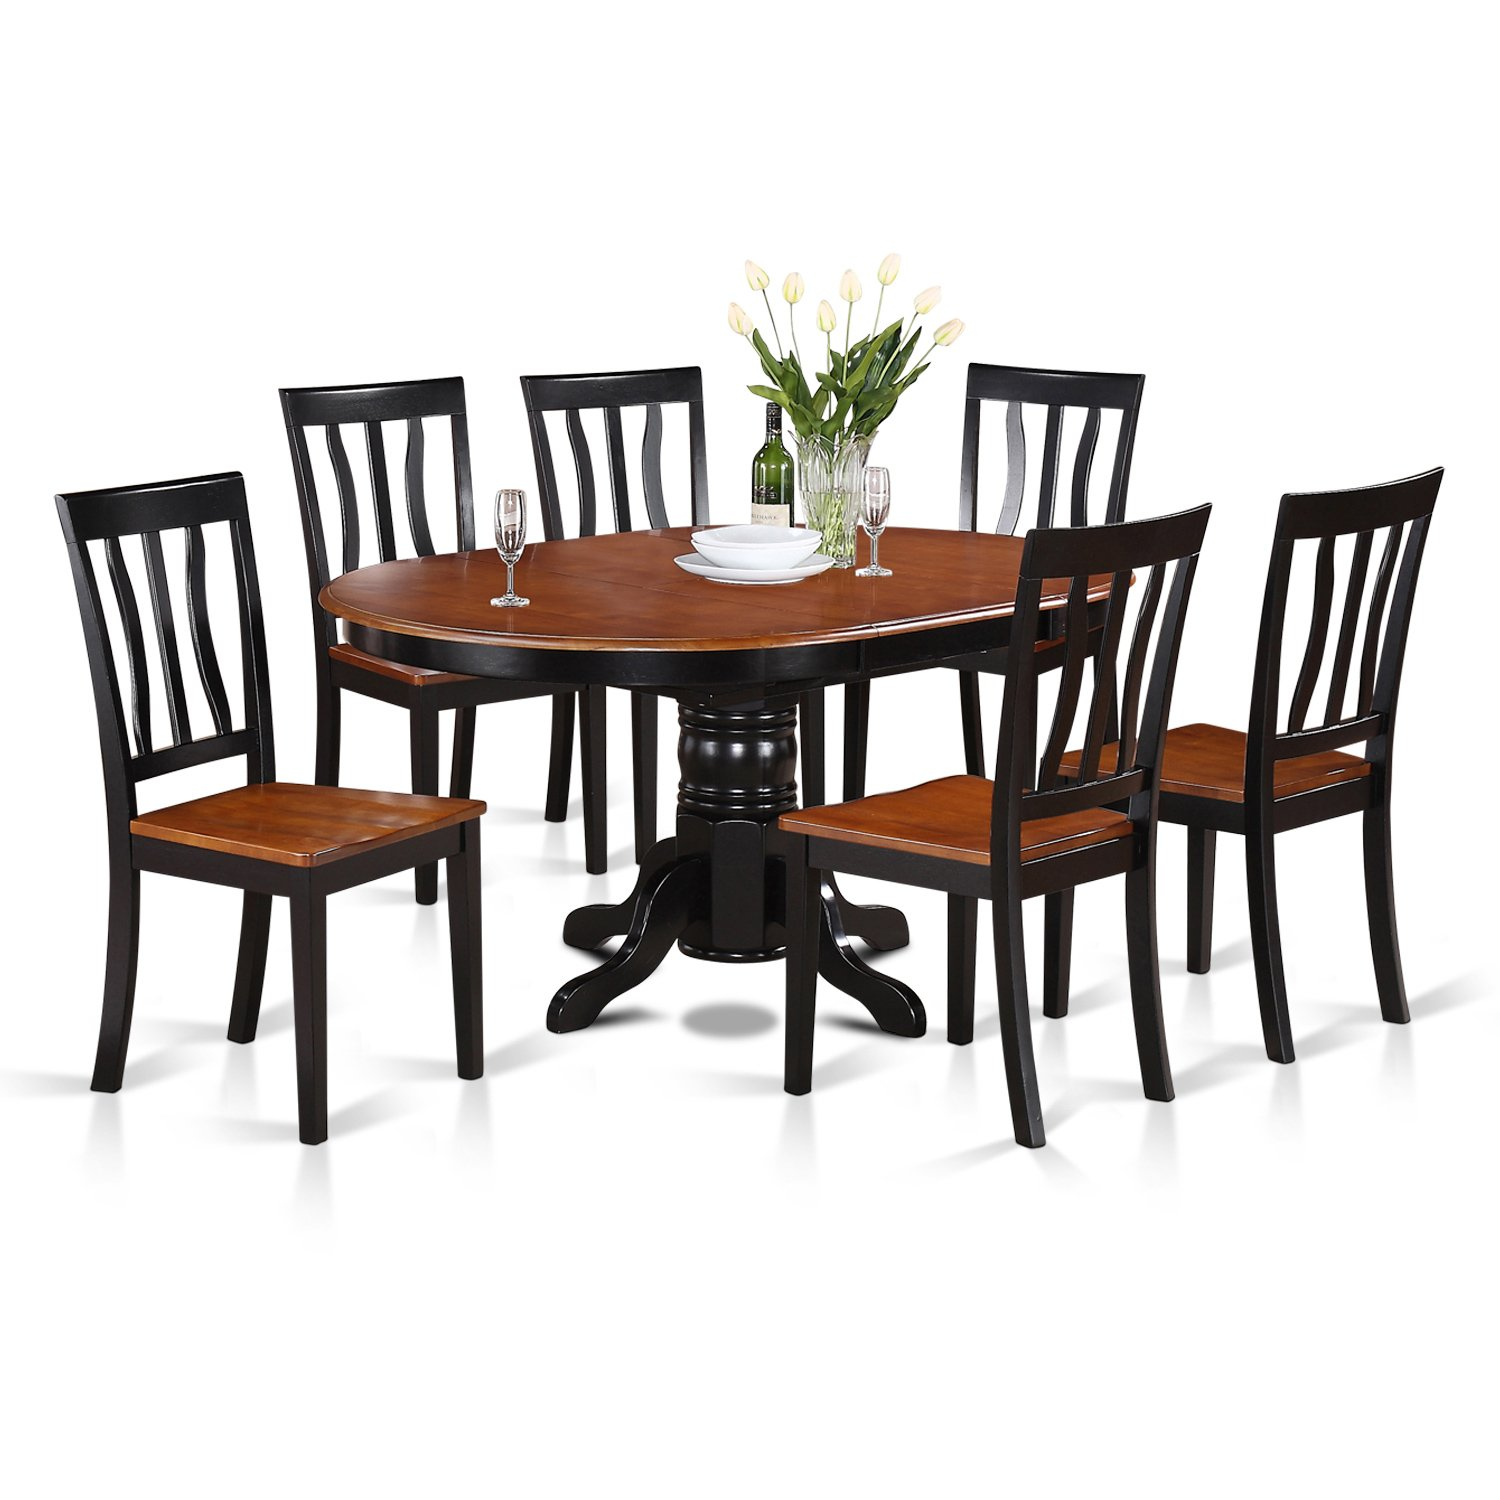 Amazon.com East West Furniture AVAT7-BLK-W 7-Piece Dining Table Set Kitchen \u0026 Dining  sc 1 st  Amazon.com & Amazon.com: East West Furniture AVAT7-BLK-W 7-Piece Dining Table Set ...